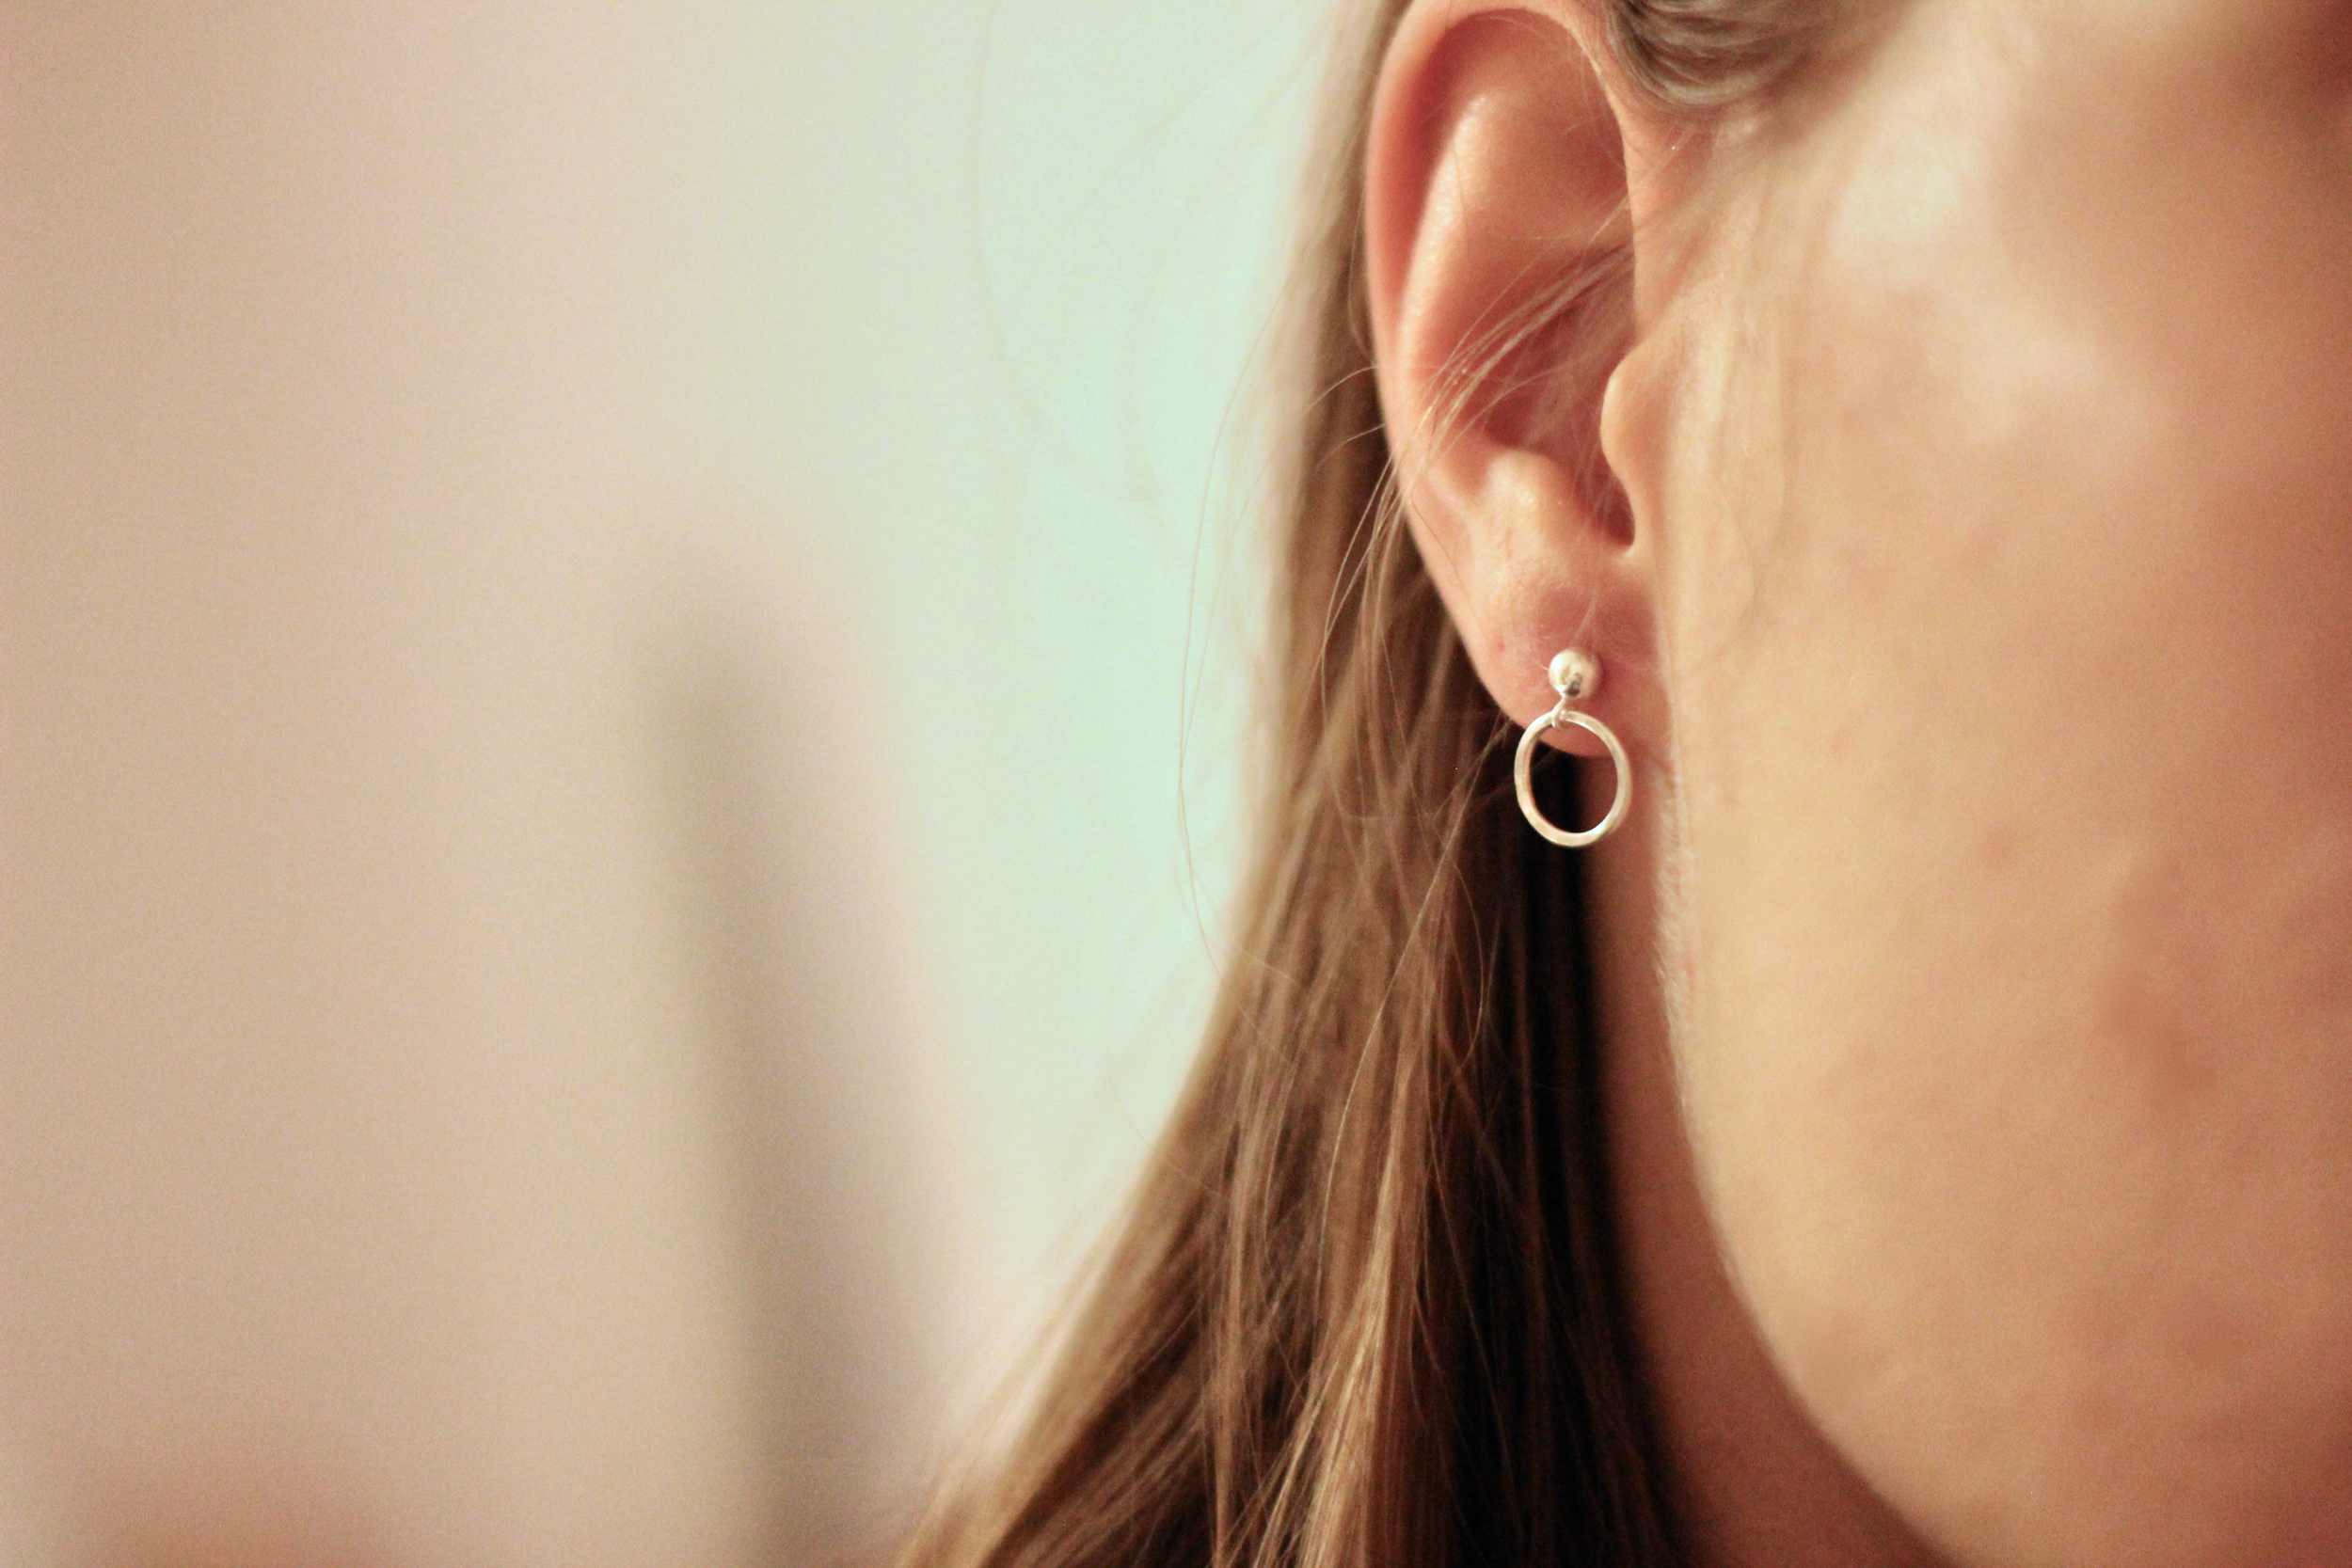 Earrings: Oh My Clumsy Heart